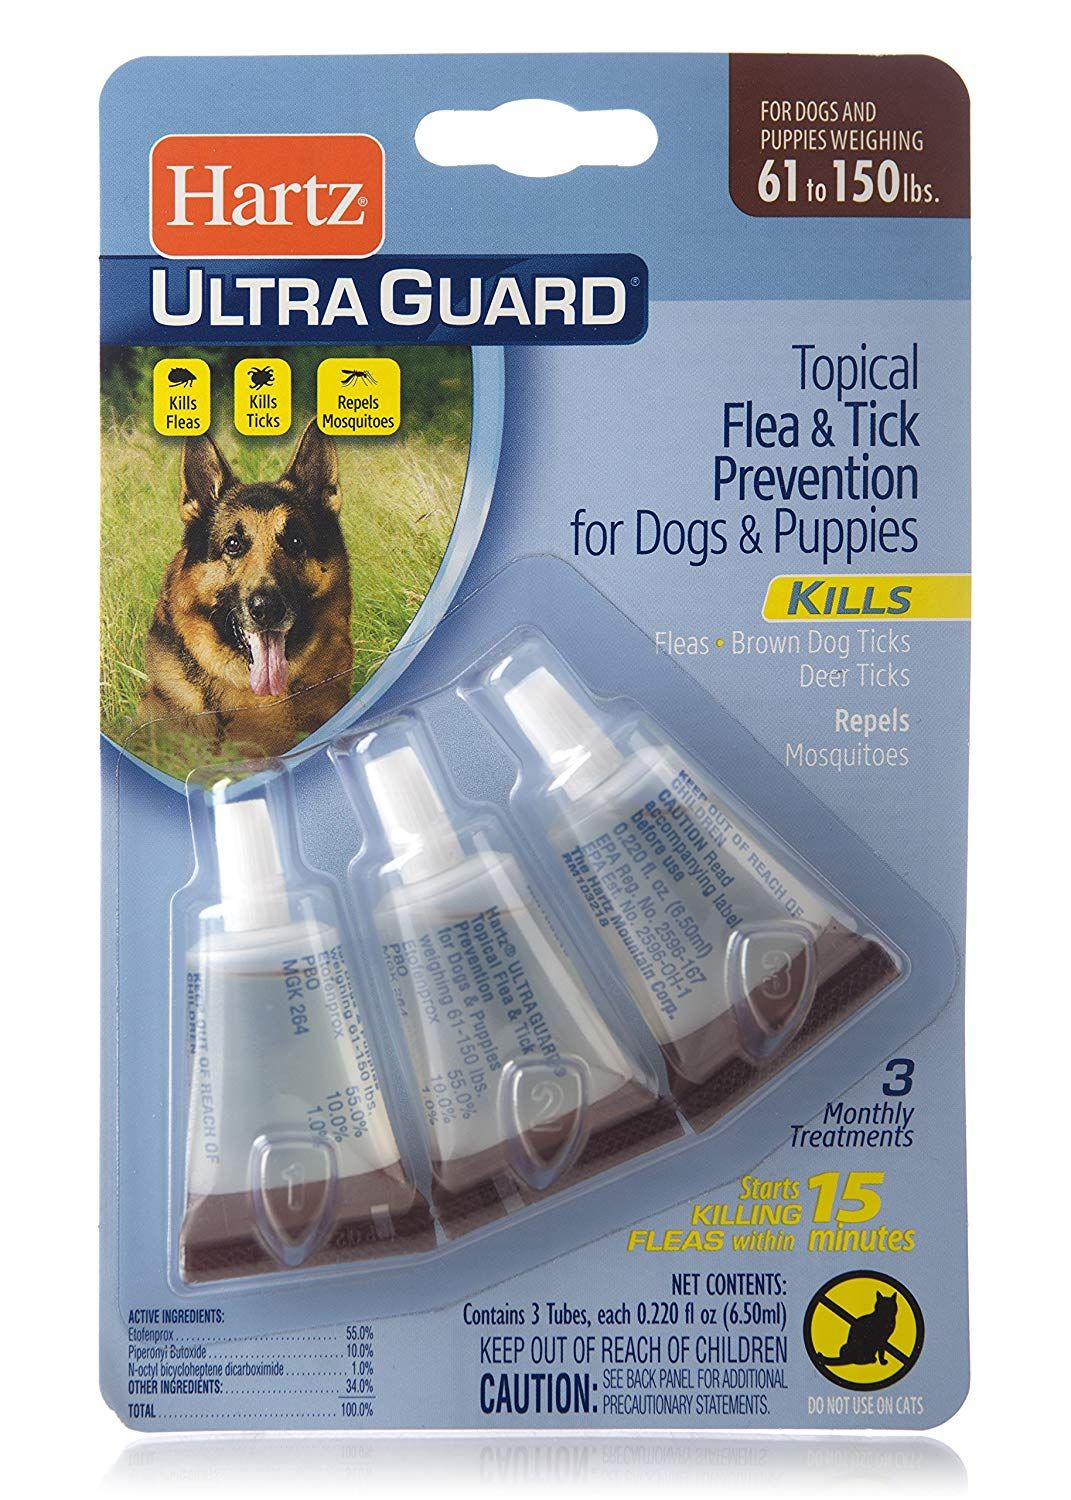 Hartz Ultraguard Flea And Tick Drops For Dogs And Puppies 5 14lbs Be Sure To Check Out This Awesome Product This Is An Brown Dog Tick Flea And Tick Fleas